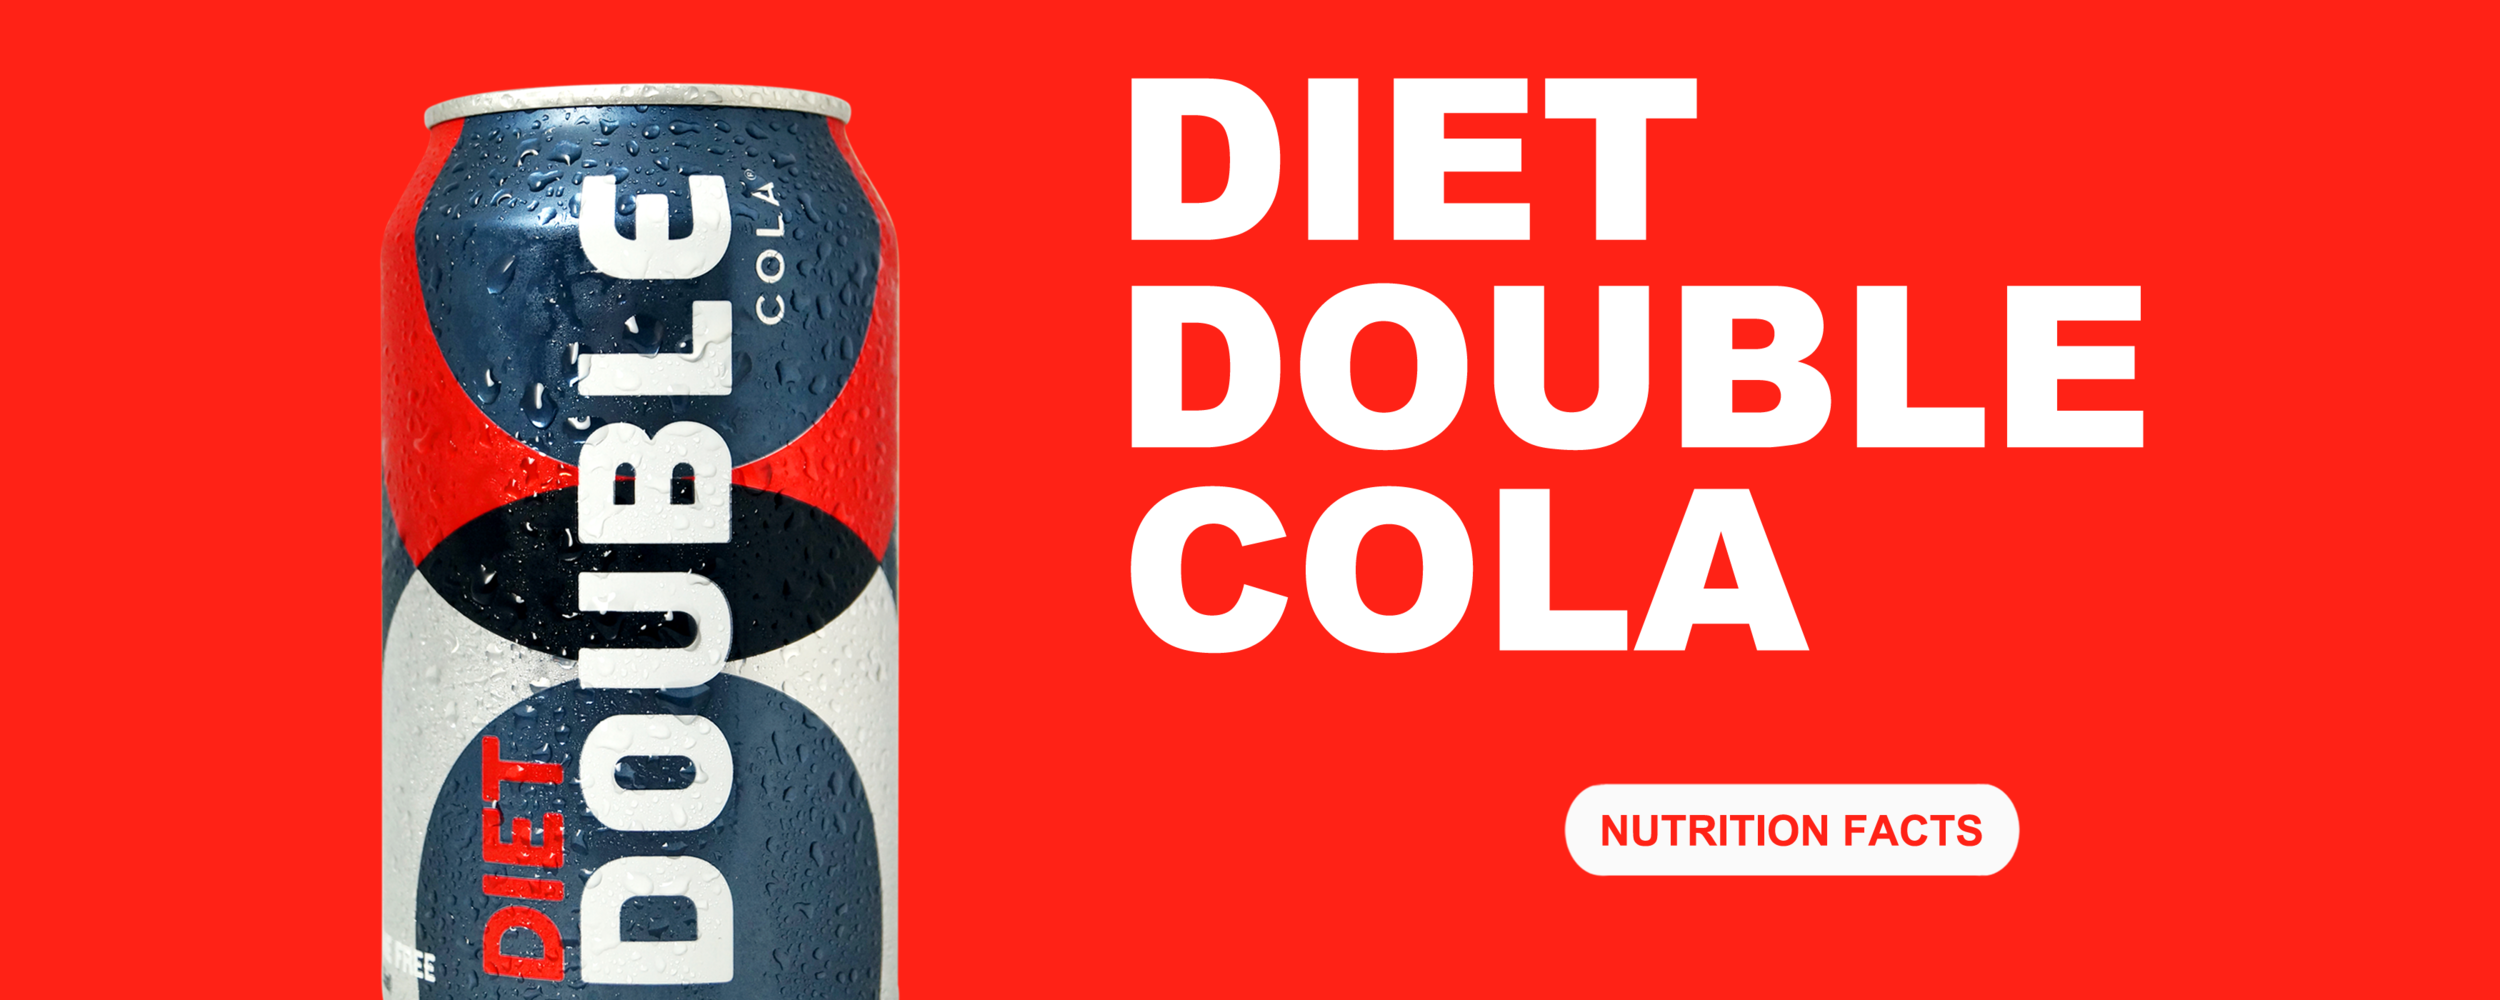 Diet Double Cola.png